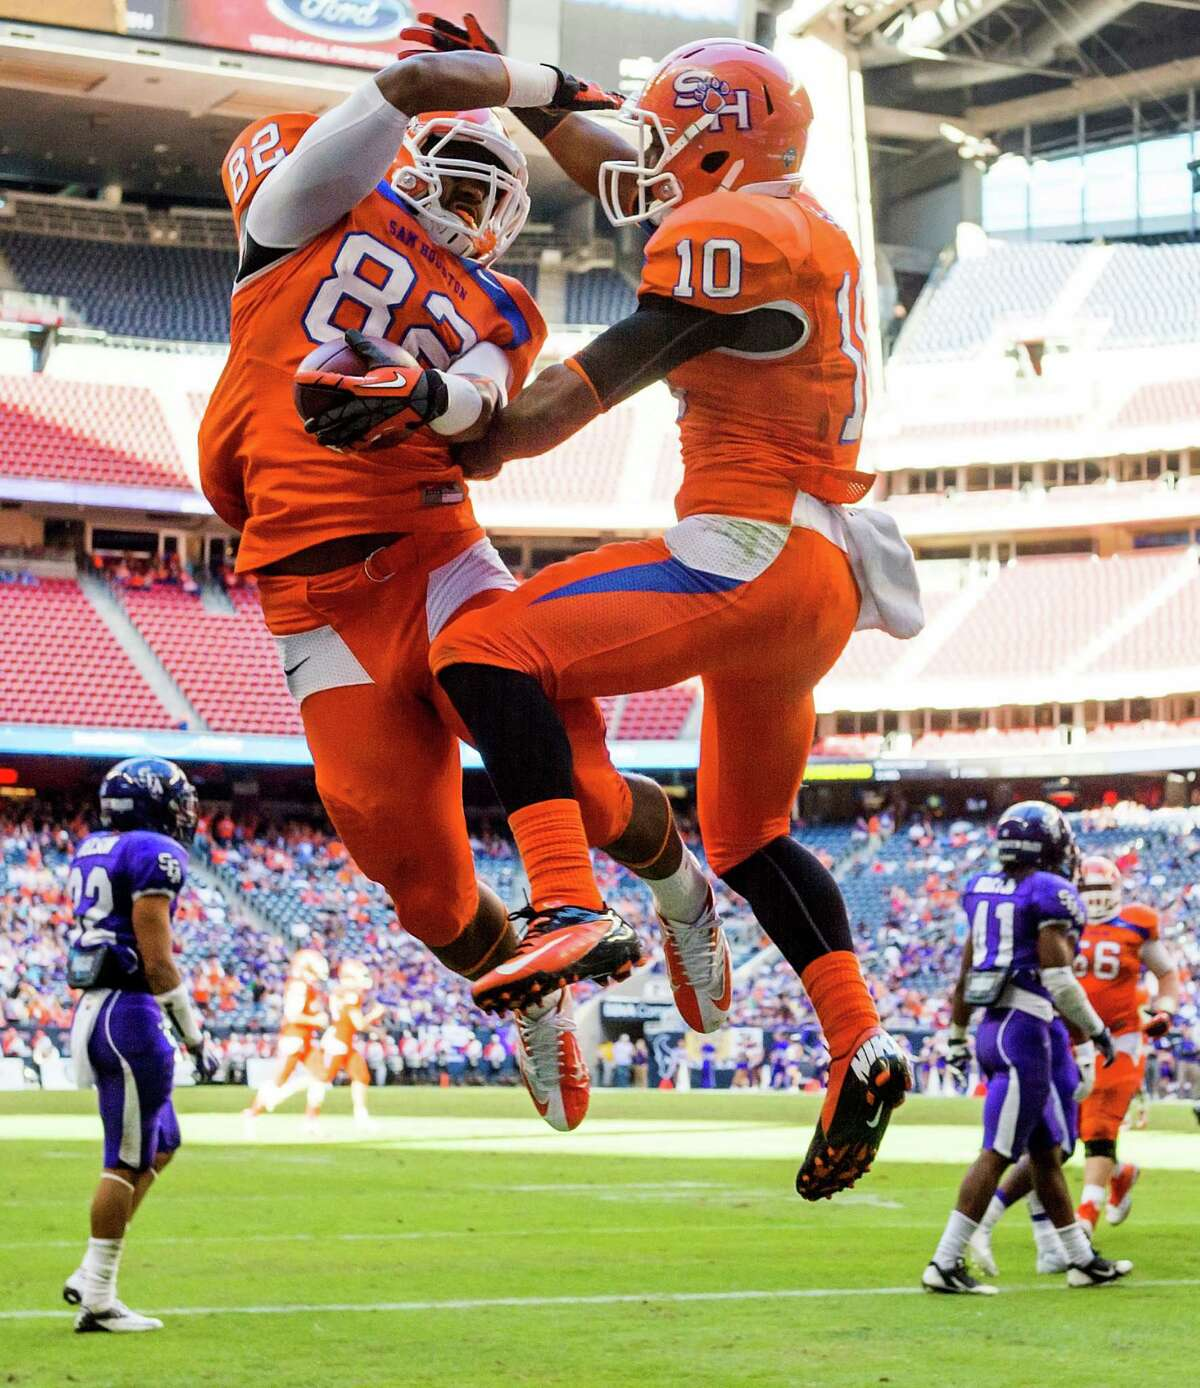 Sam Houston State wide receiver Stephen Williams (82) celebrates with teammate Torrance Williams (10) after scoring on a touchdown reception in the first half.